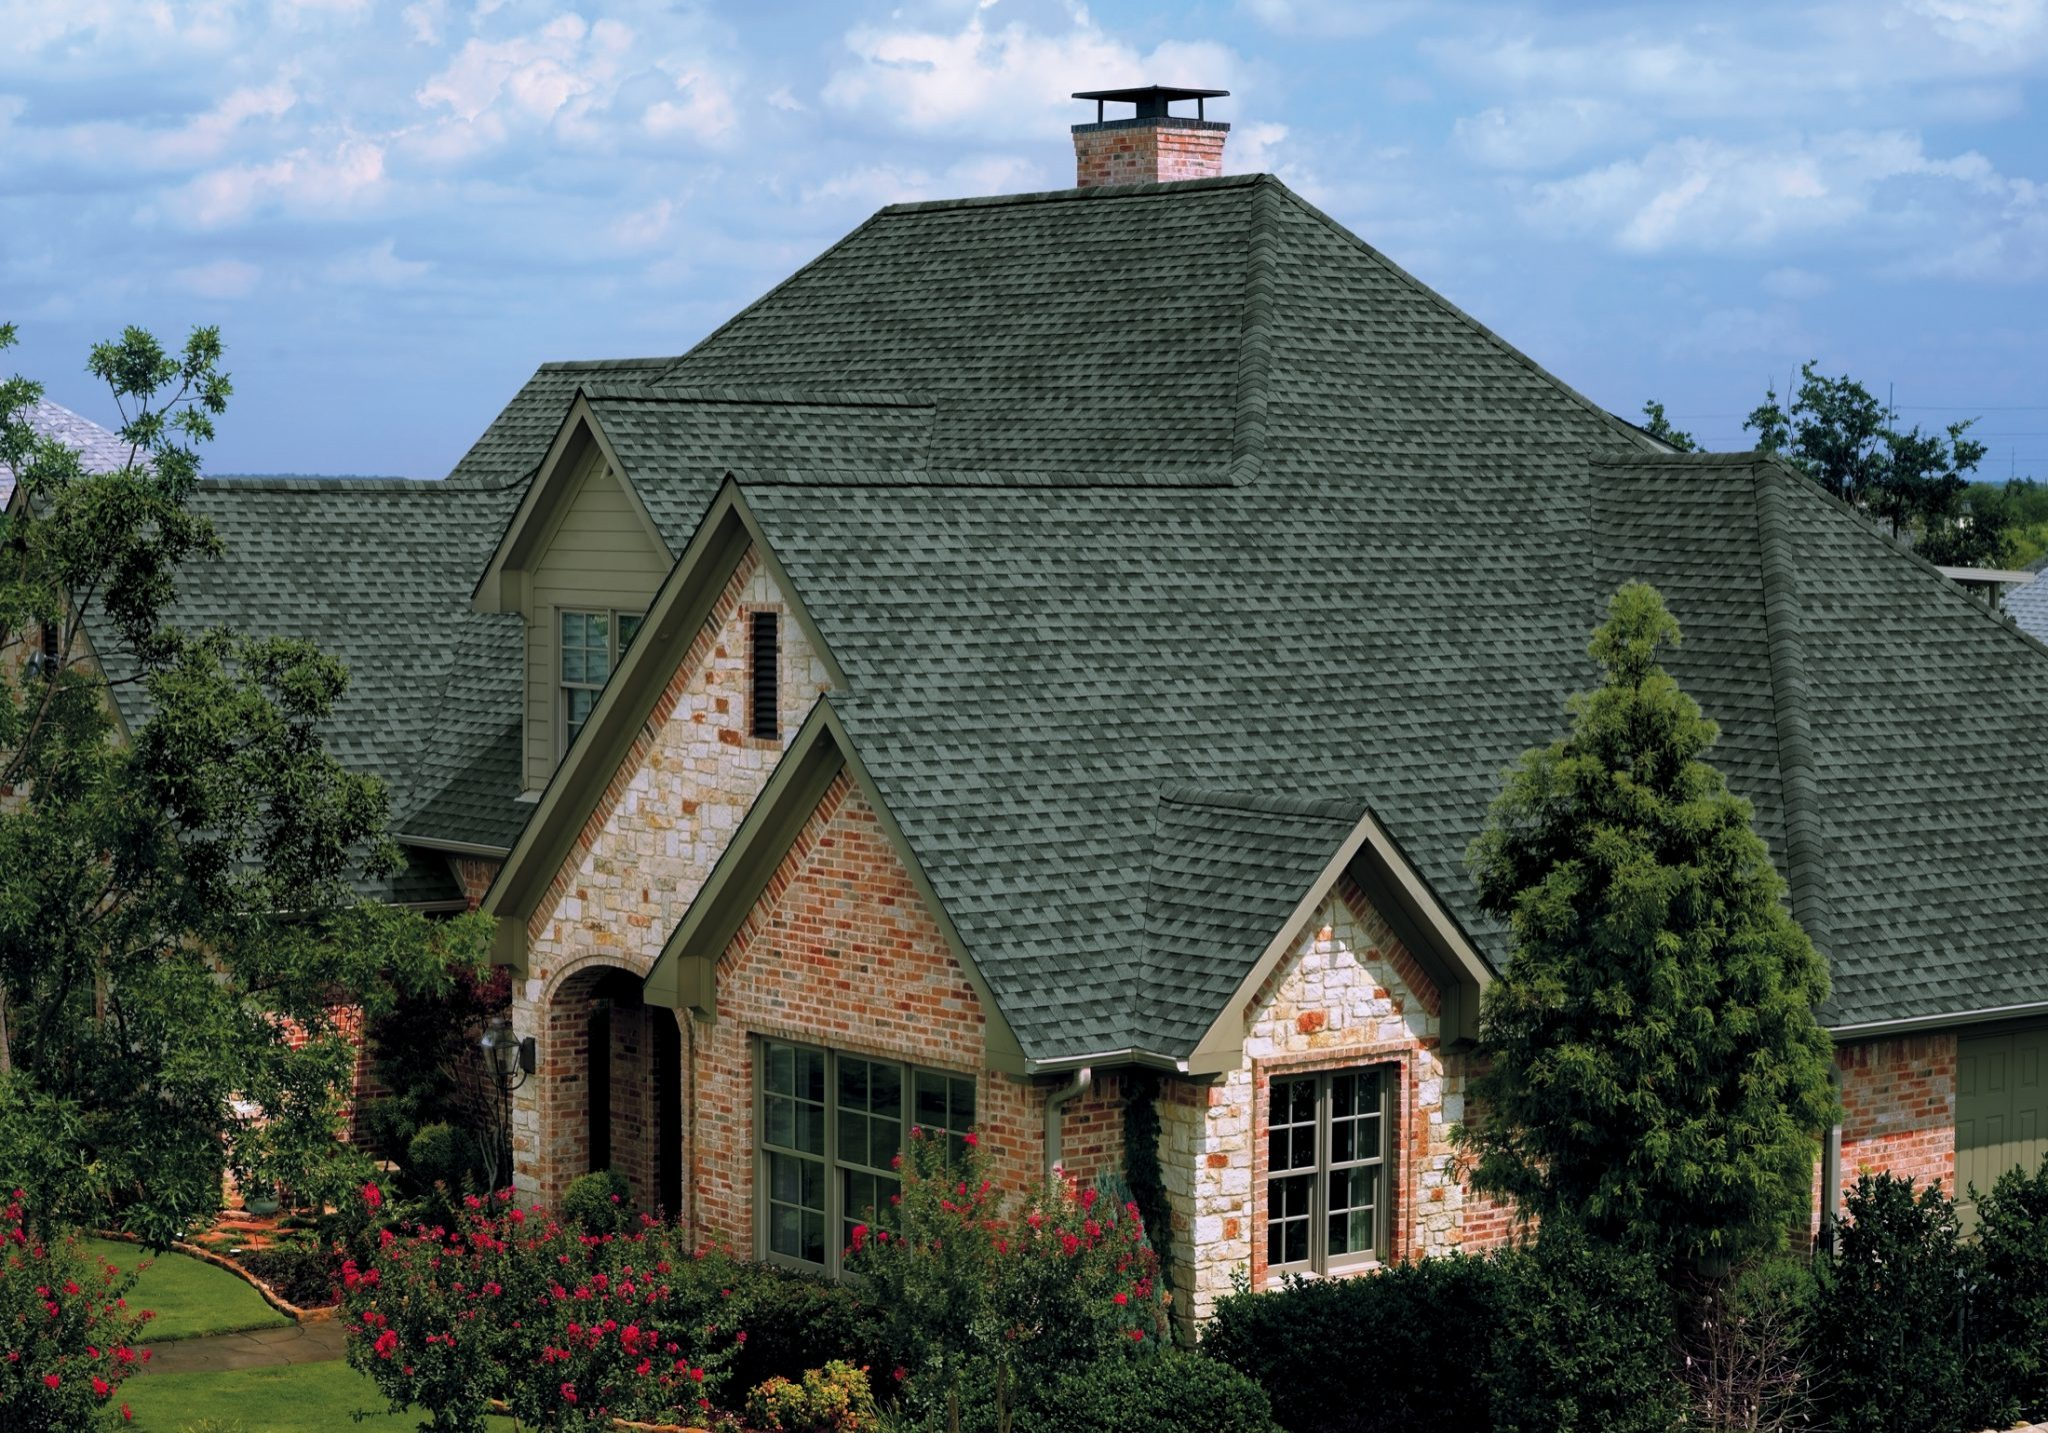 Asphalt Roof, Asphalt Shingles, Slate Grey Green Roof, Large Brick House